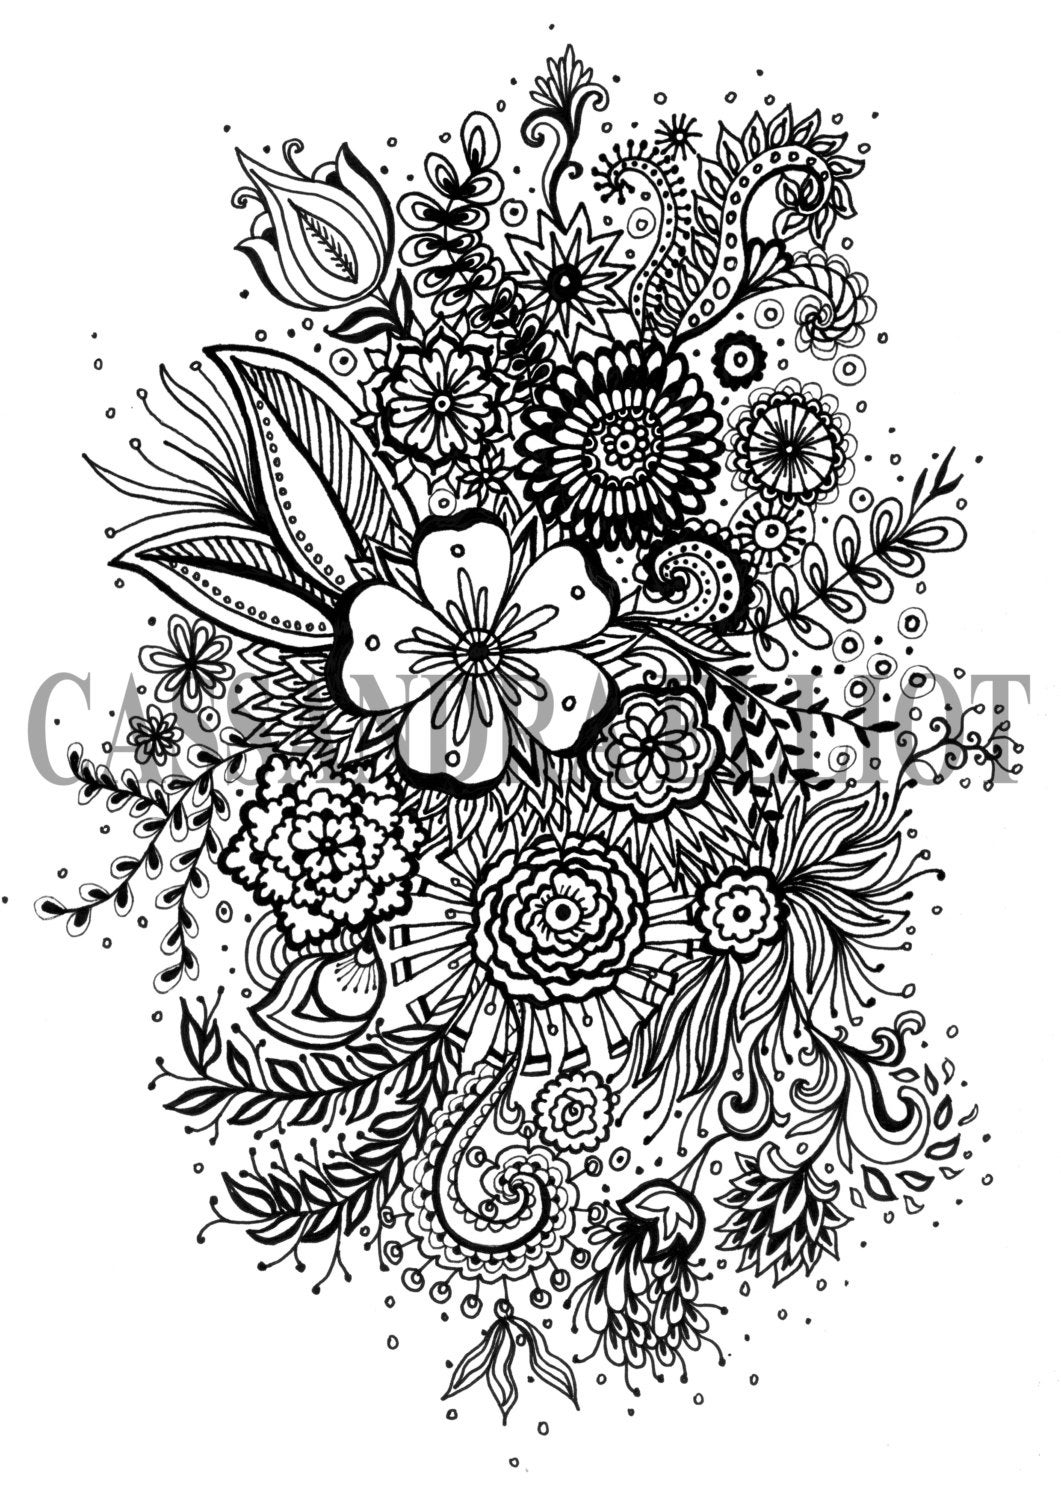 printable coloring pages for adults flowers free adult coloring pages 35 gorgeous printable coloring coloring flowers printable pages adults for